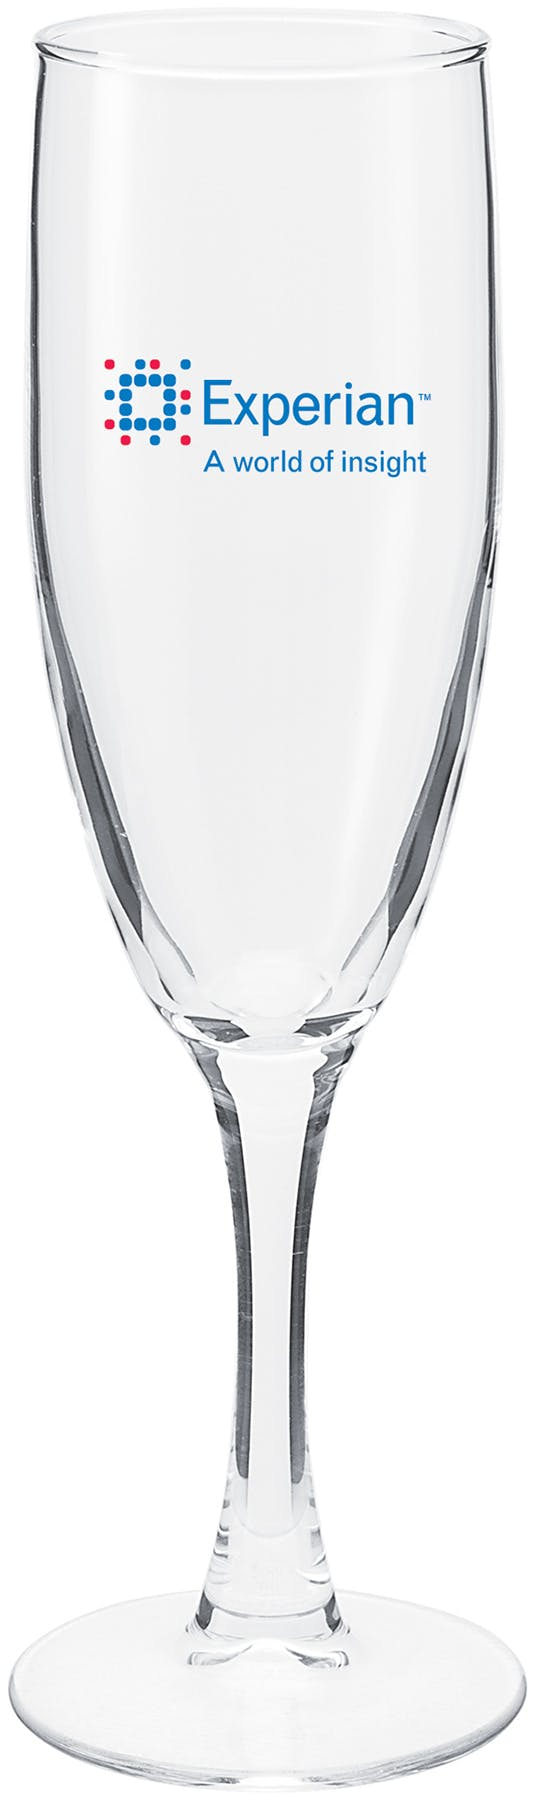 6 Oz. Flute Wine Glass (Item # SGHOT-GTLDO) Wine glass sold by InkEasy